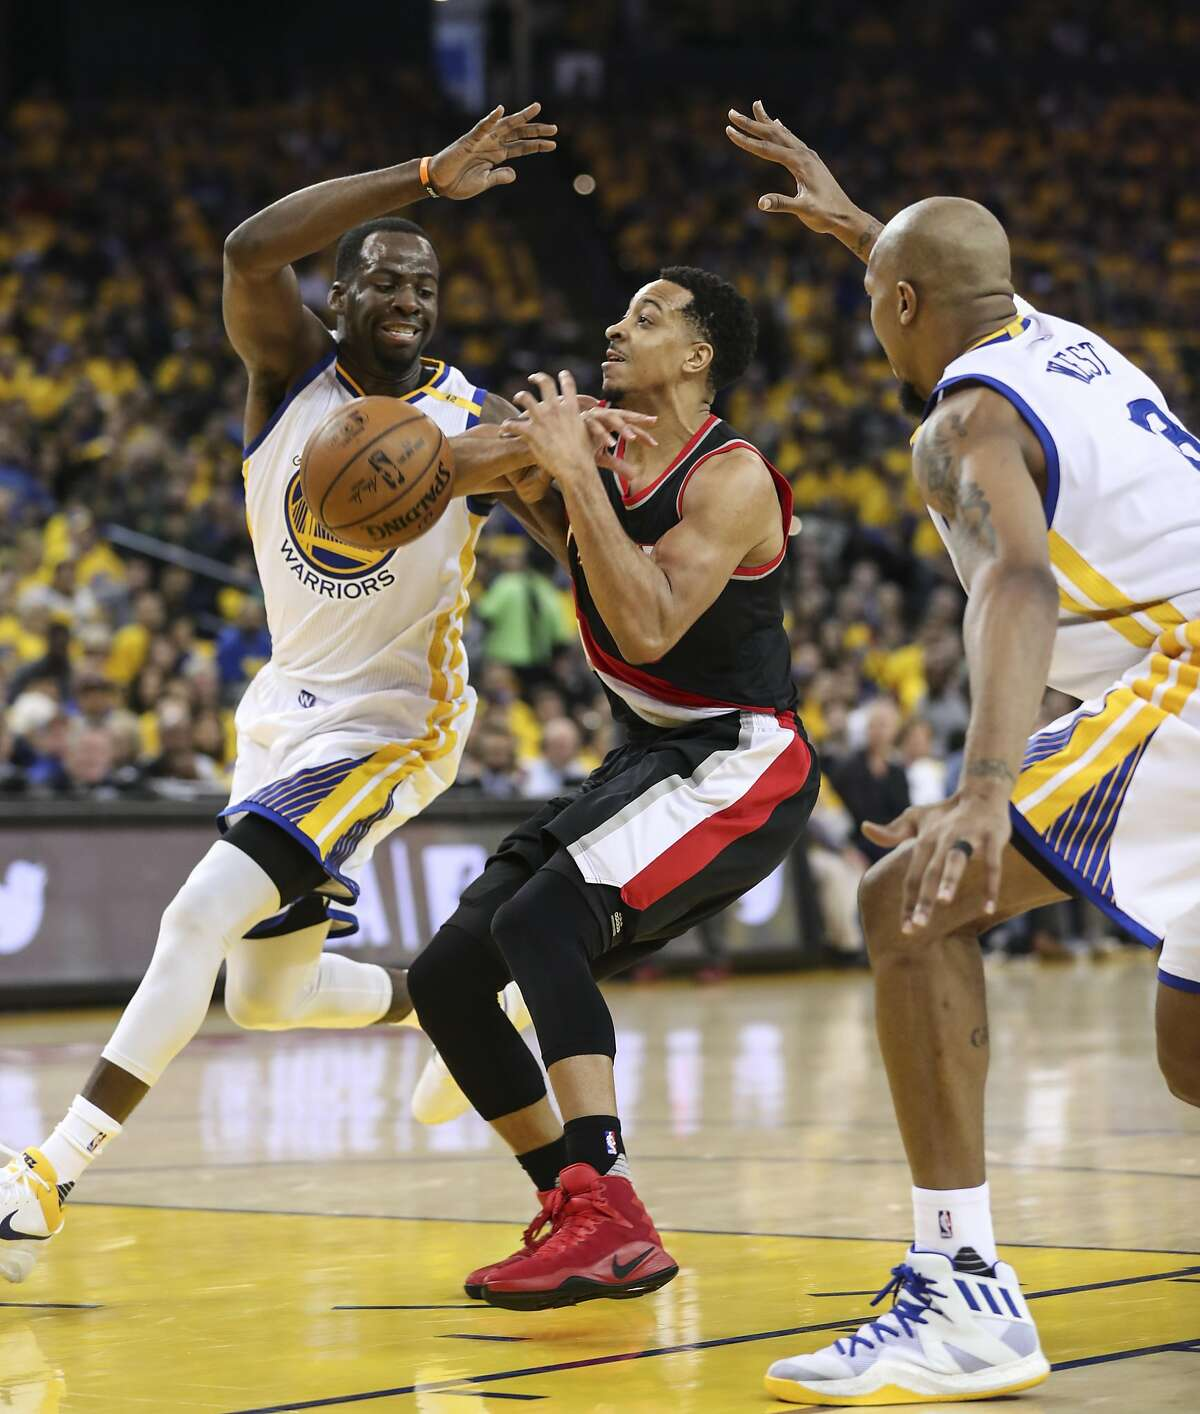 Portland Trailblazers' CJ McCollum loses the ball guarded by Golden State Warriors' Draymond Green and David West in the second quarter during Game 1 of the First Round of the Western Conference 2017 NBA Playoffs at Oracle Arena on Sunday, April 16, 2017 in Oakland, Calif.